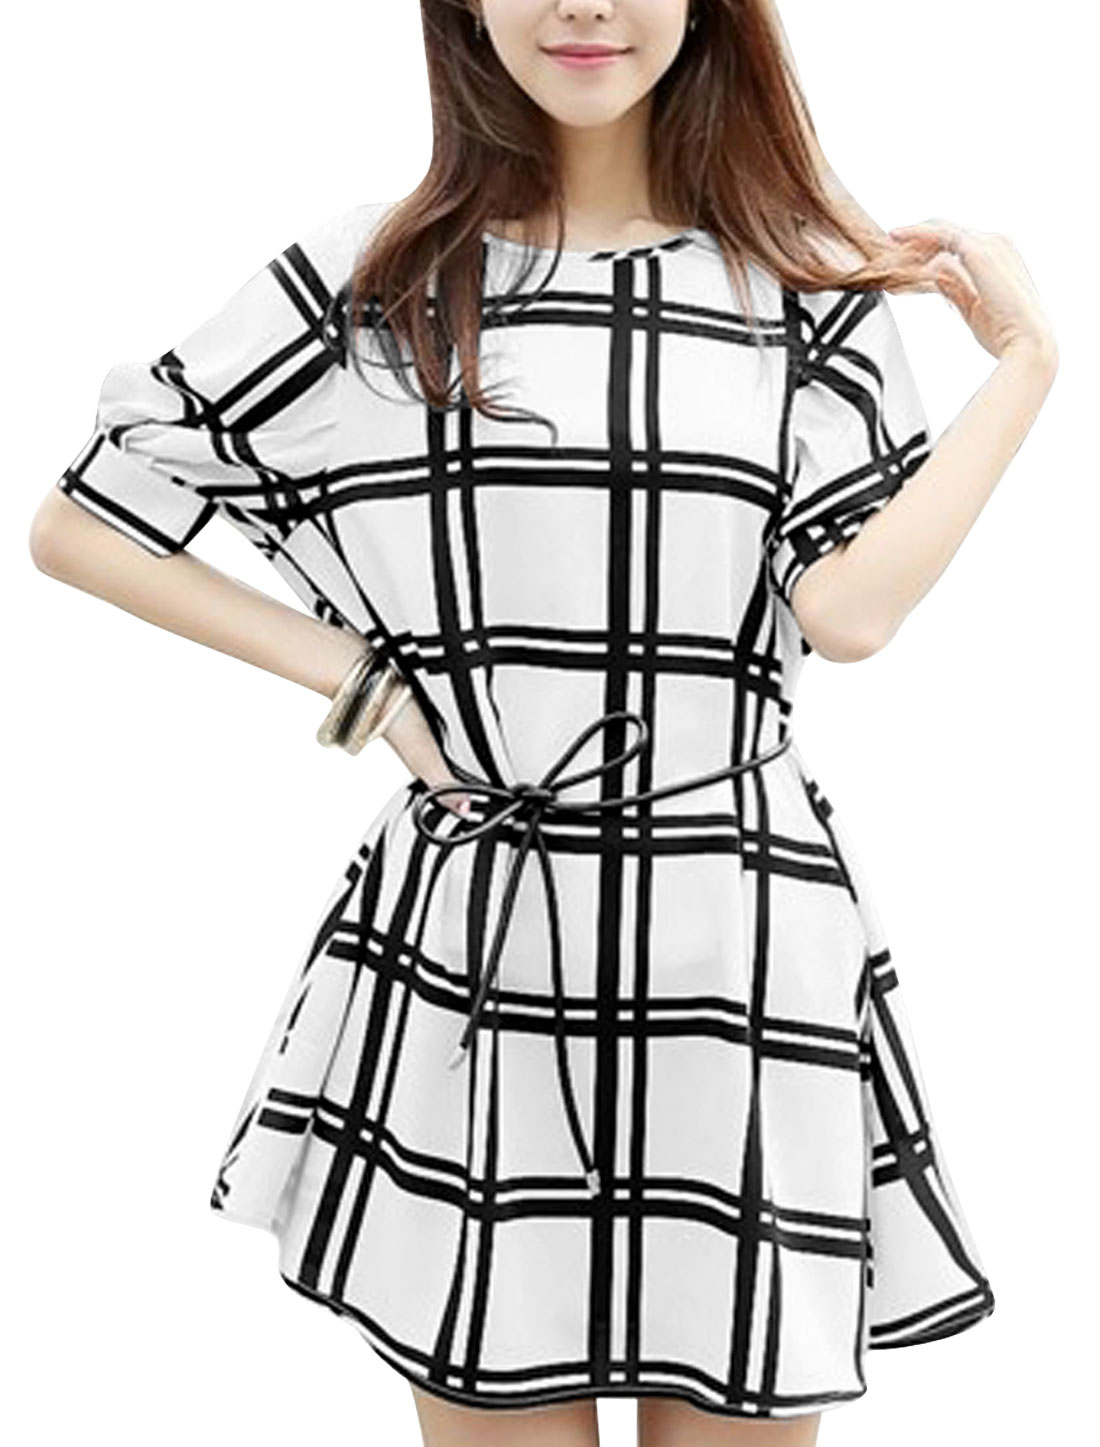 Lady Plaids Pattern Elbow Sleeve Pullover Blouson Dress w Waist String White XS